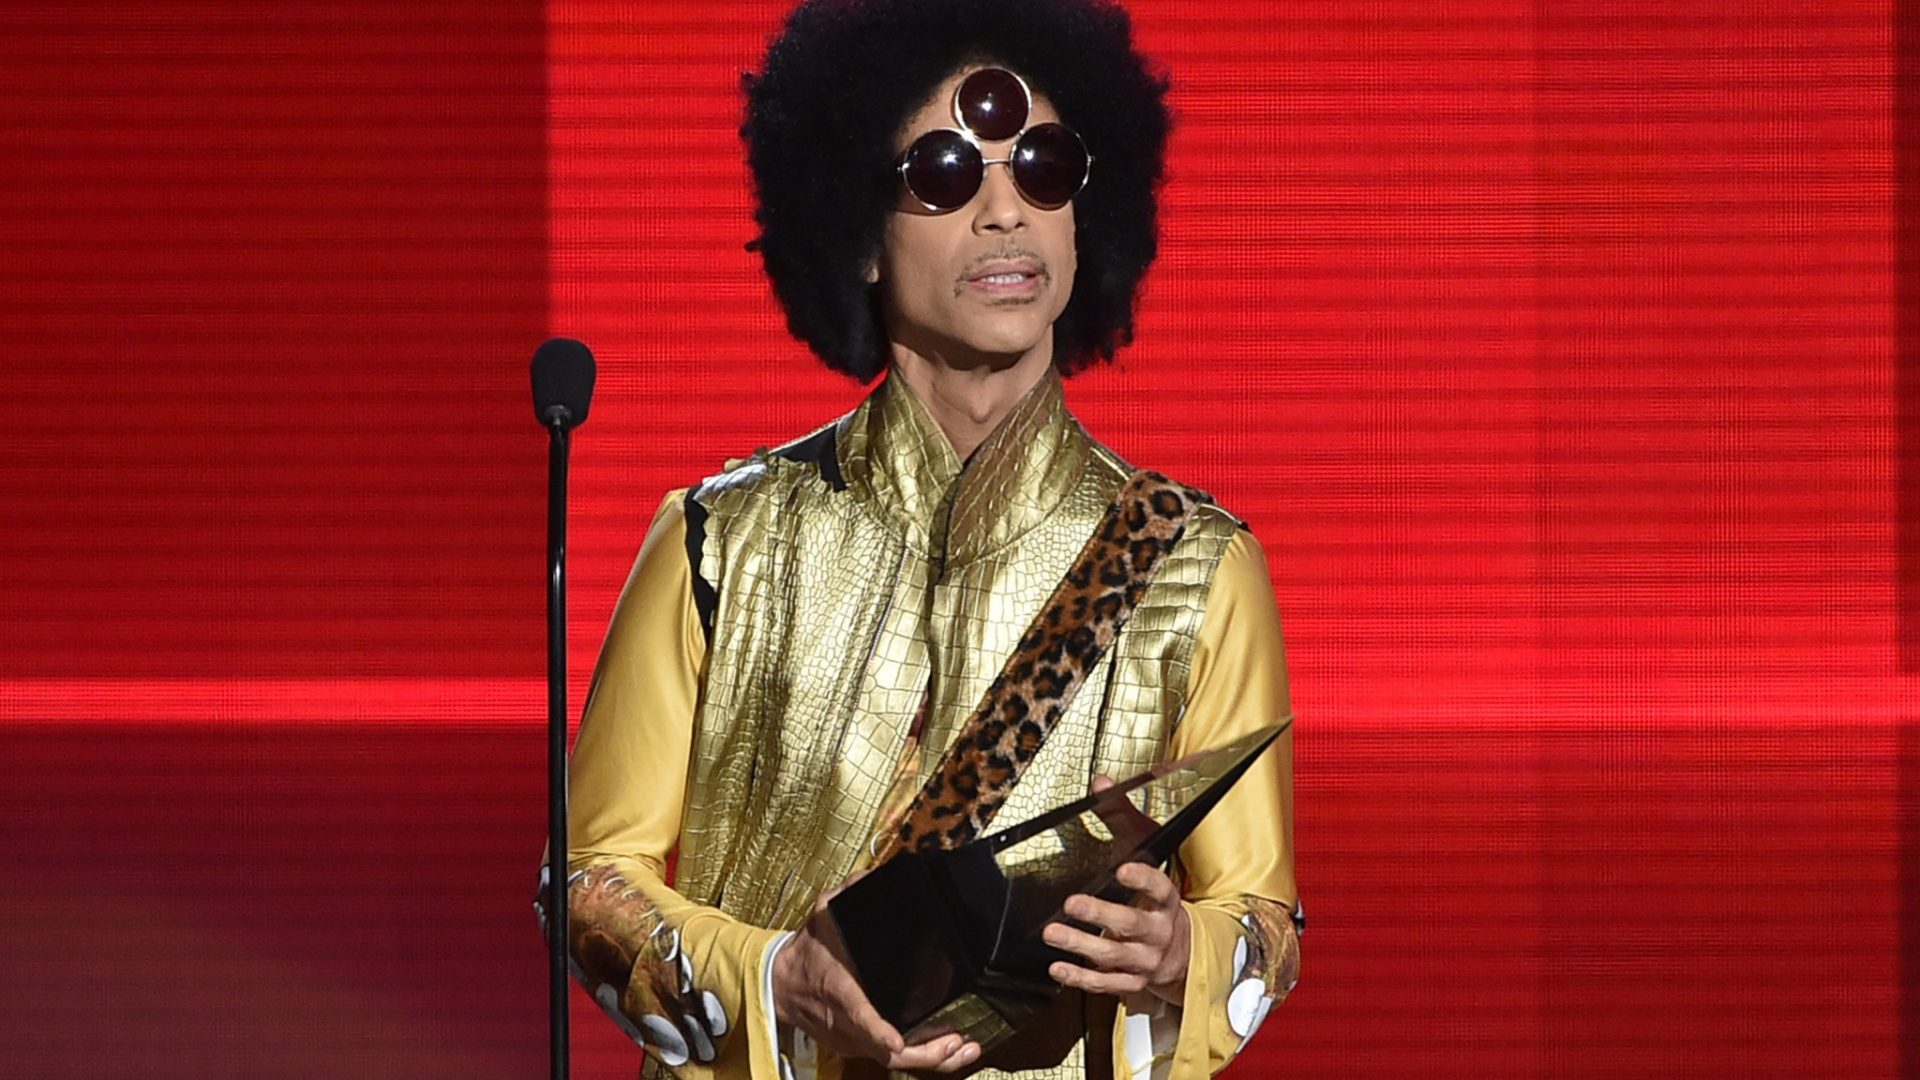 Late music great Prince